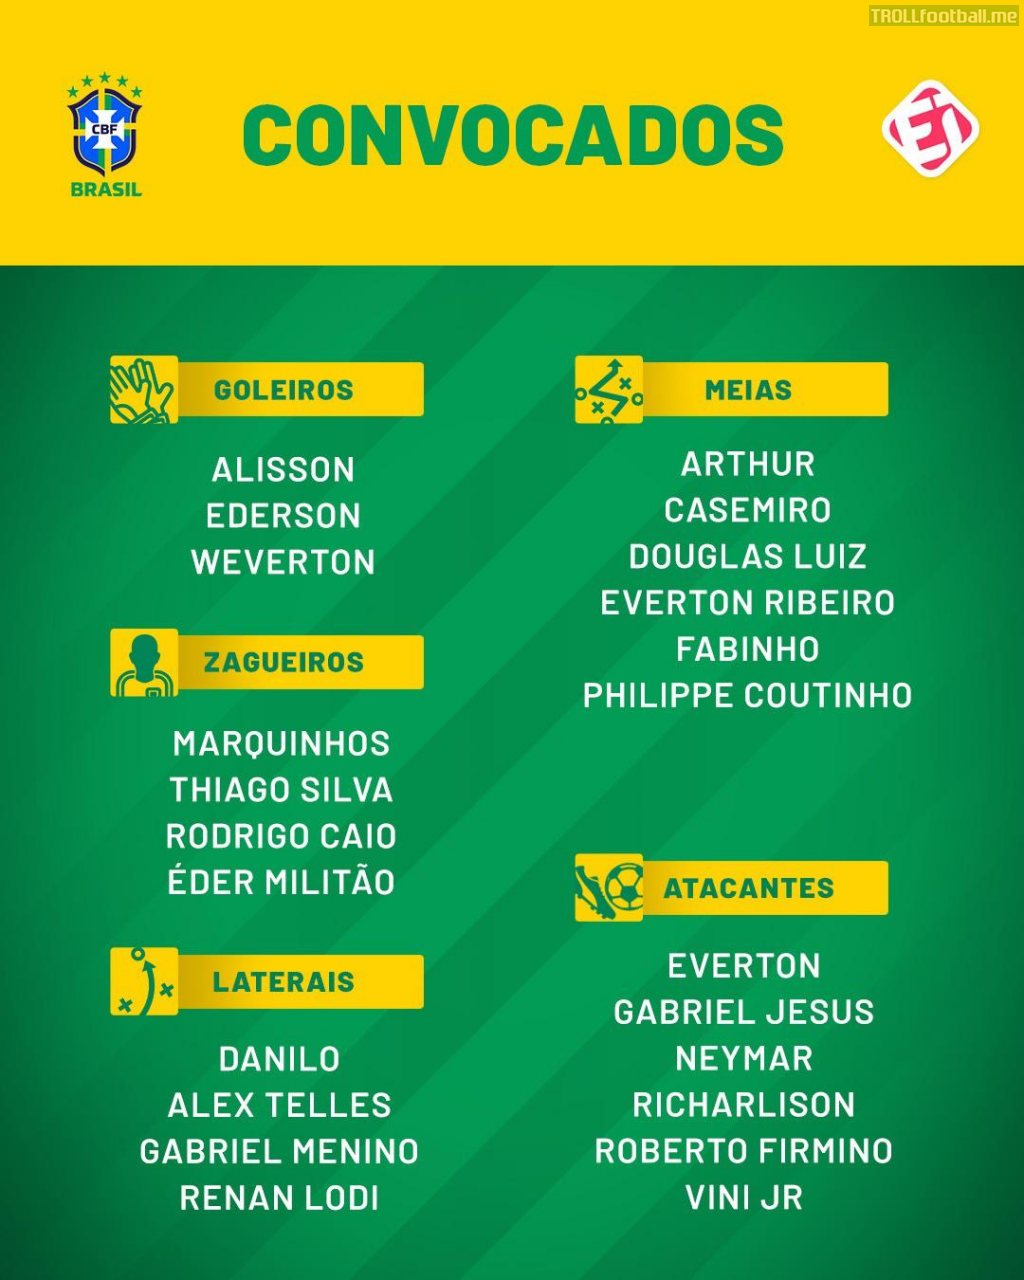 Brazil Nation team selection for upcoming games against Venezuela and Uruguay